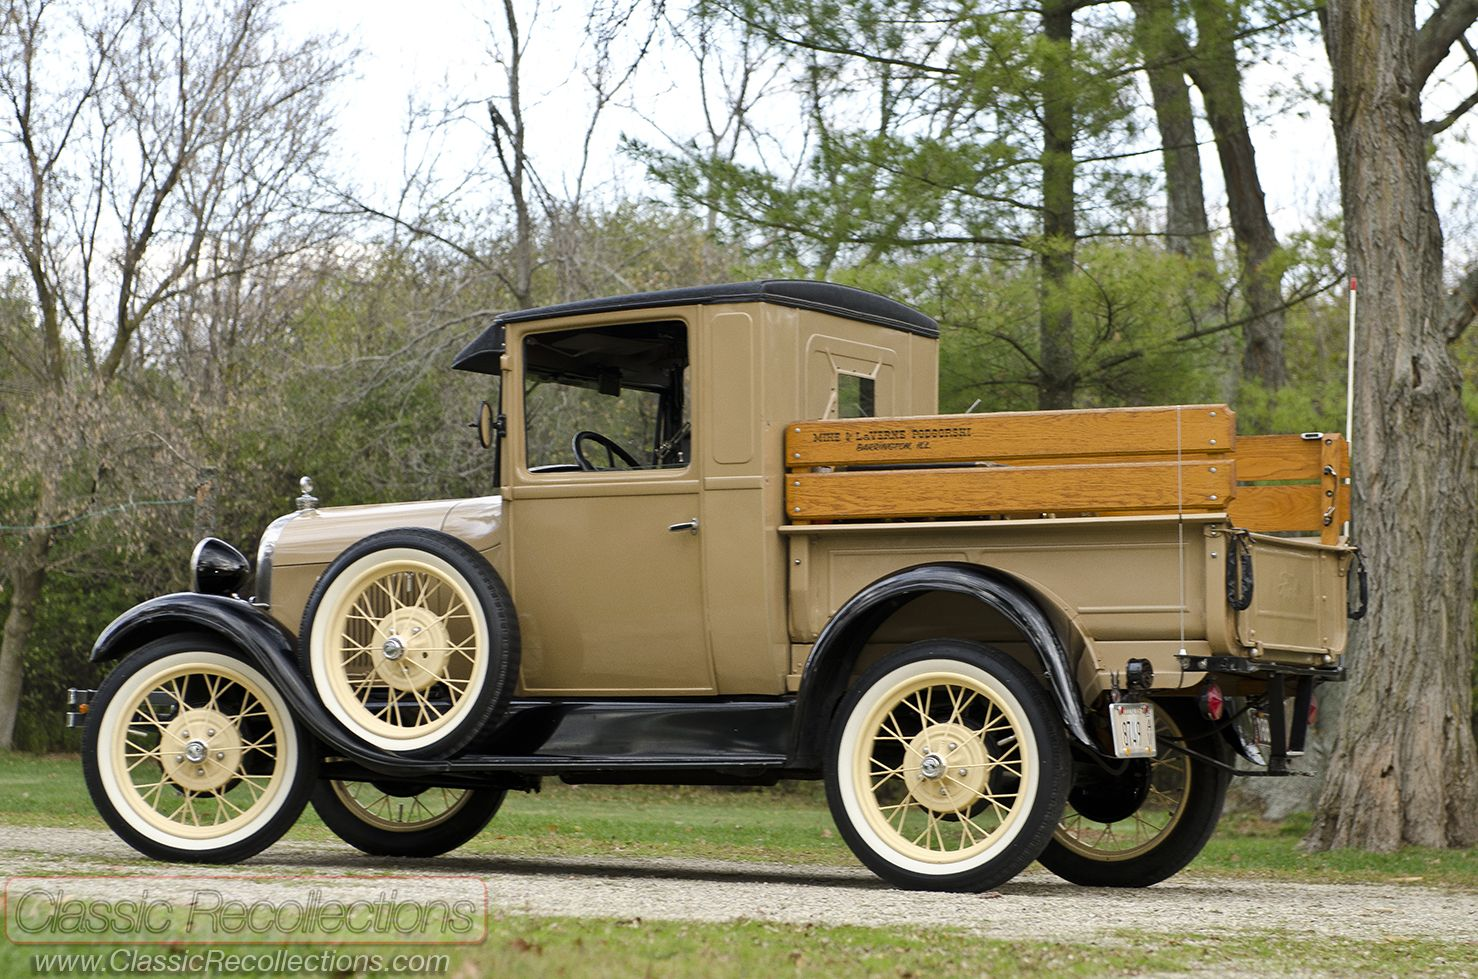 This 1928 Ford Model A Pickup and 1930 Ford Model A Town Sedan have been  restored